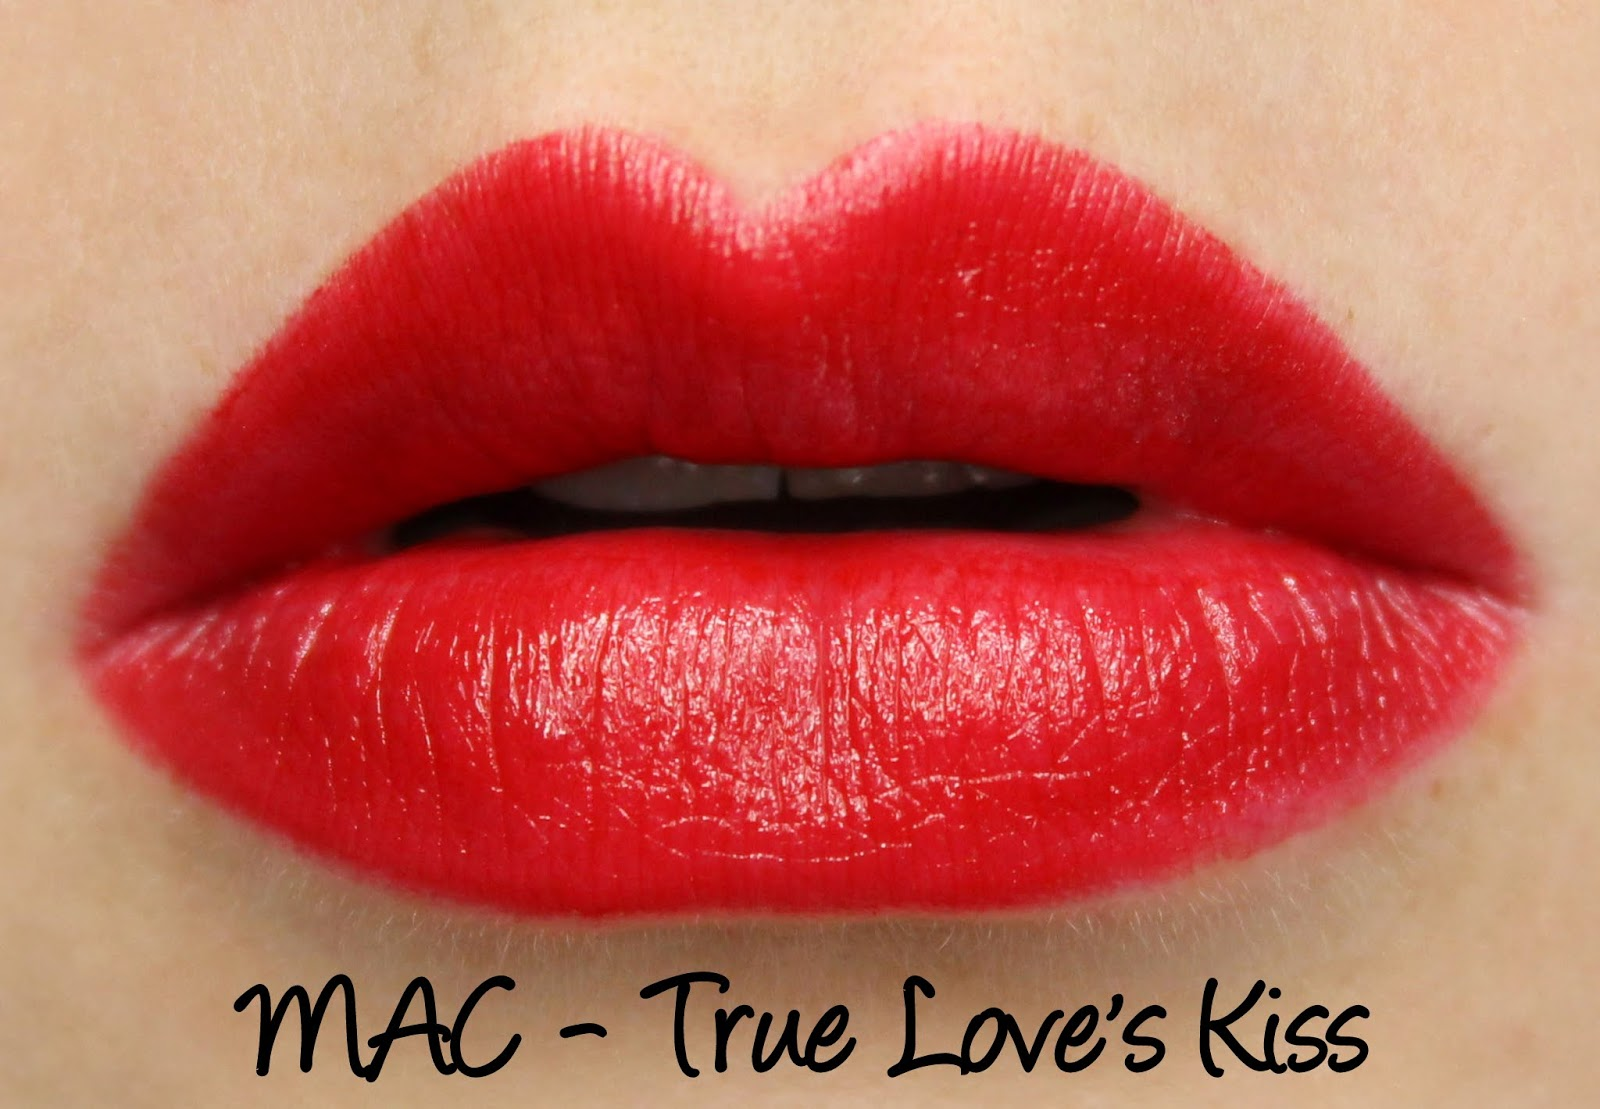 Mac monday maleficent true loves kiss lipstick swatches mac monday maleficent true loves kiss lipstick swatches review thecheapjerseys Gallery